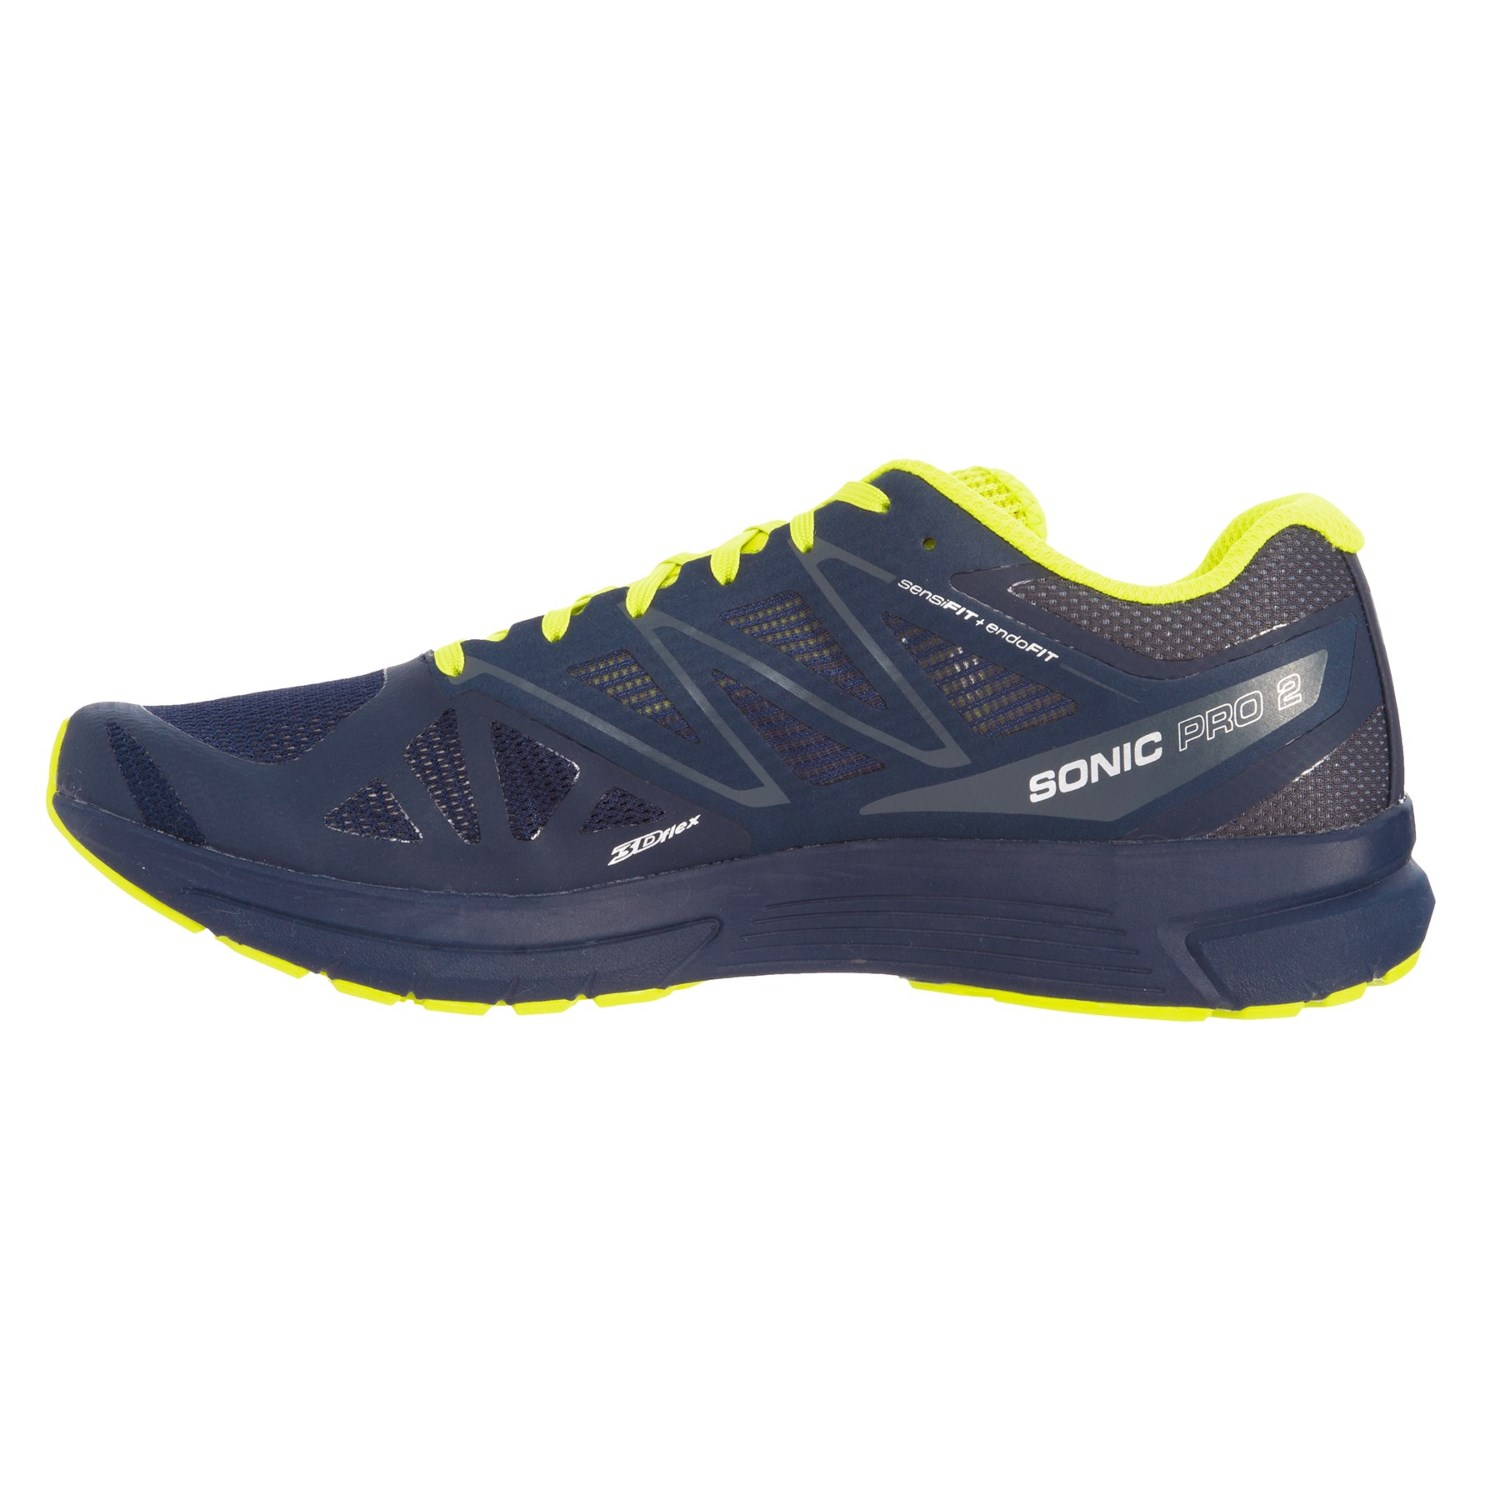 e95fbee98f06 Salomon Sonic Pro 2 Running Shoes (For Men) - Save 57%